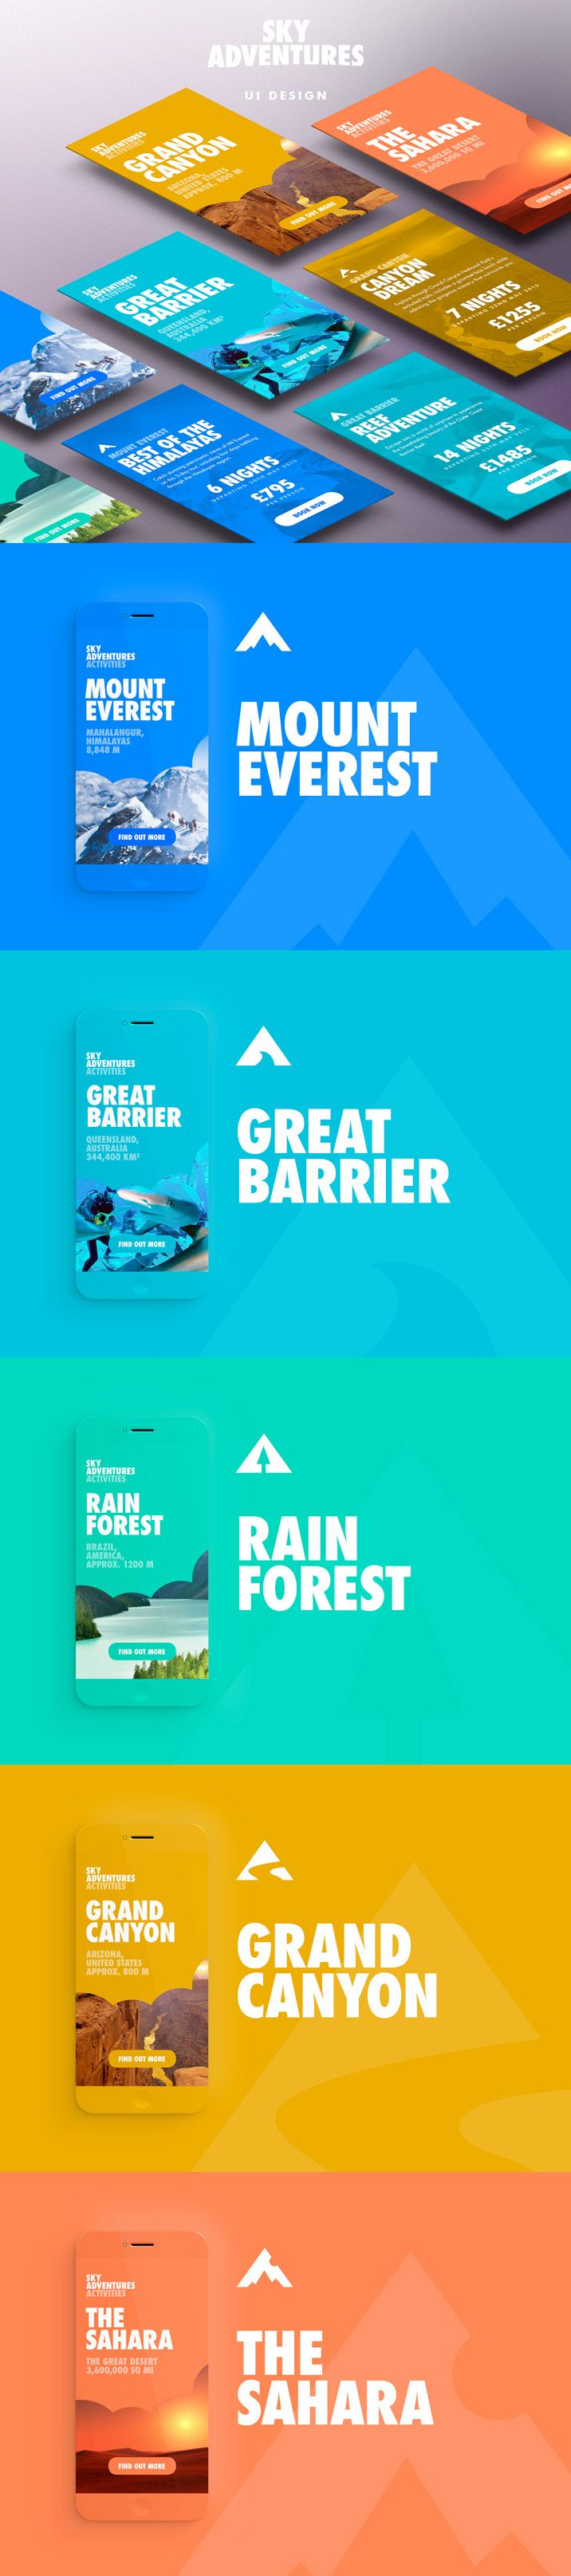 http://www.cssdesignawards.com/articles/new-color-inspiration-for-web-designers/234/